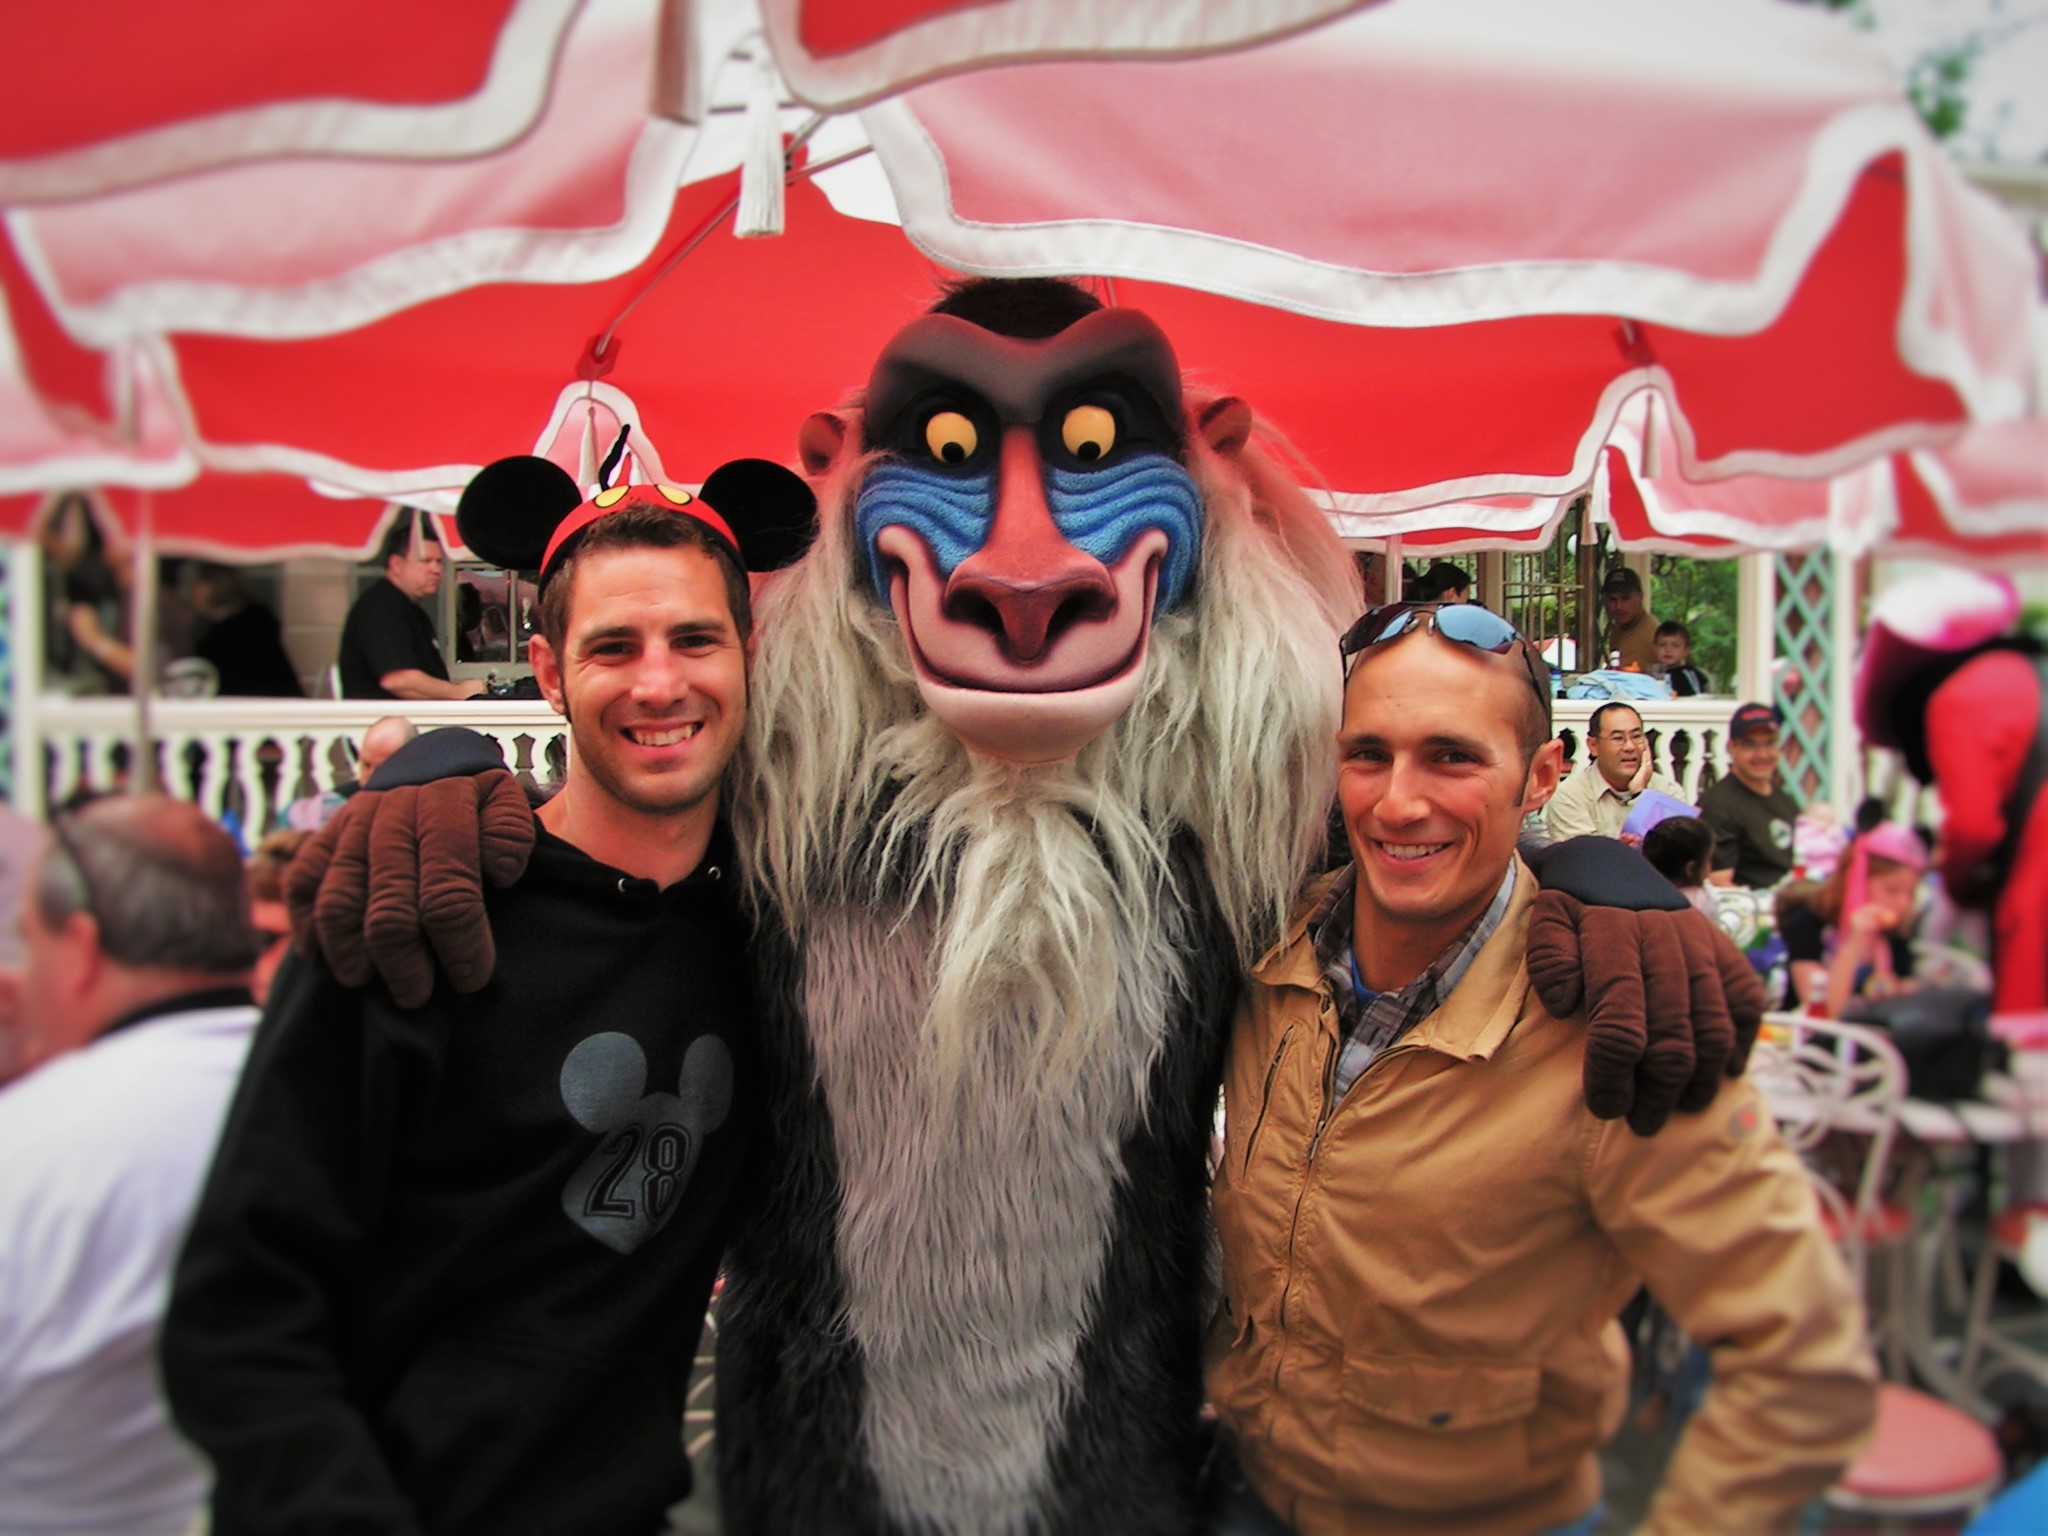 Chris-and-Rob-Taylor-at-Character-breakfast-in-Disneyland